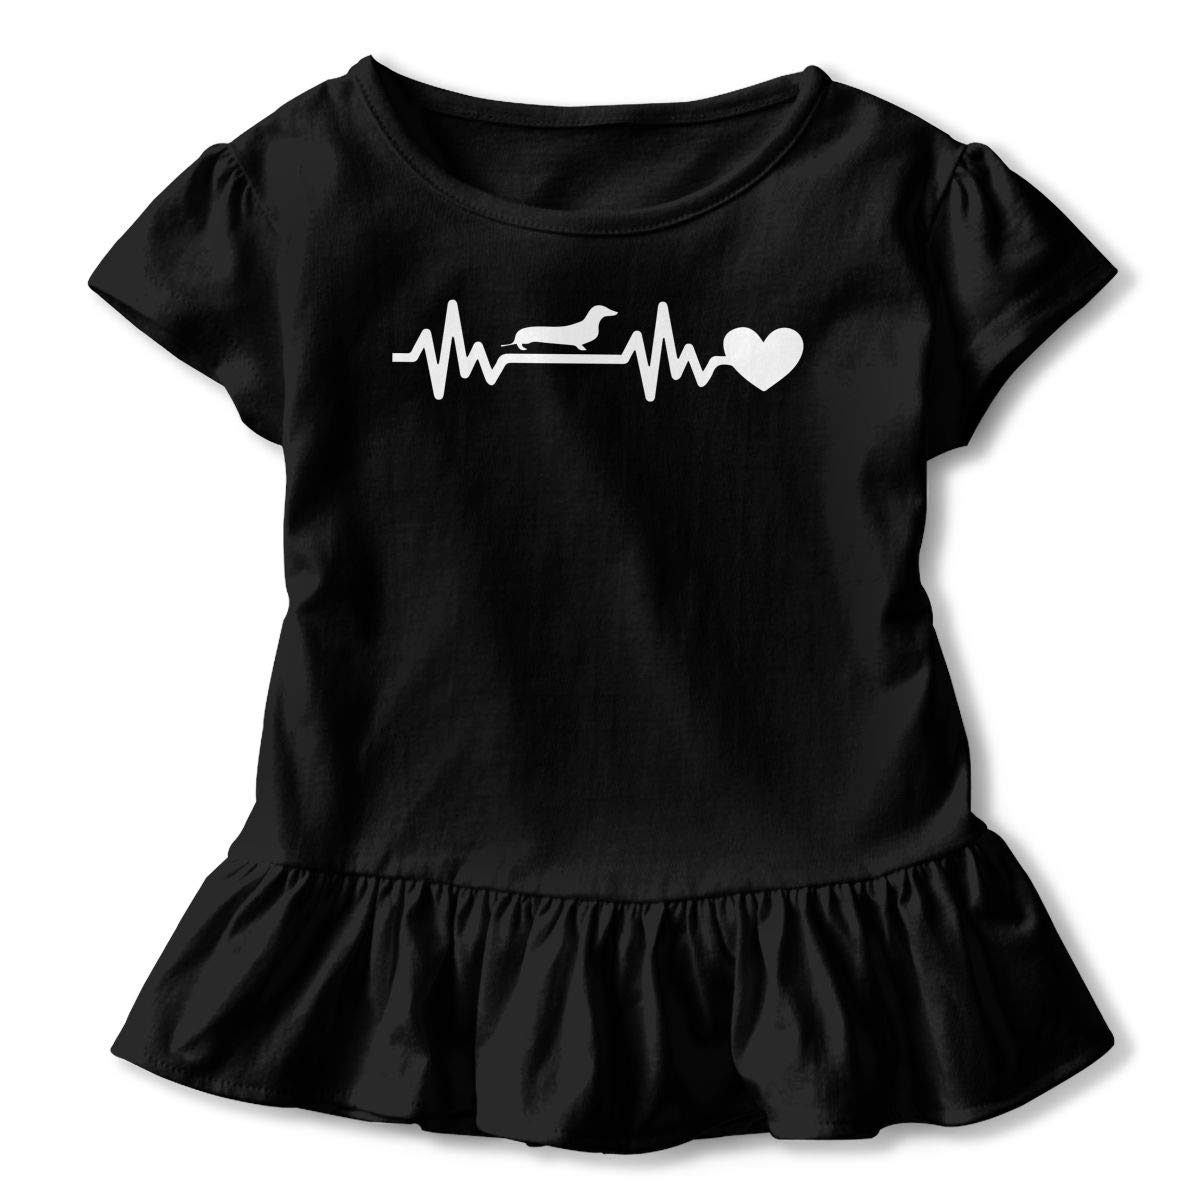 Dachshund Heartbeat Kids Girls Short Sleeve Shirts Ruffles Shirt T-Shirt for 2-6T